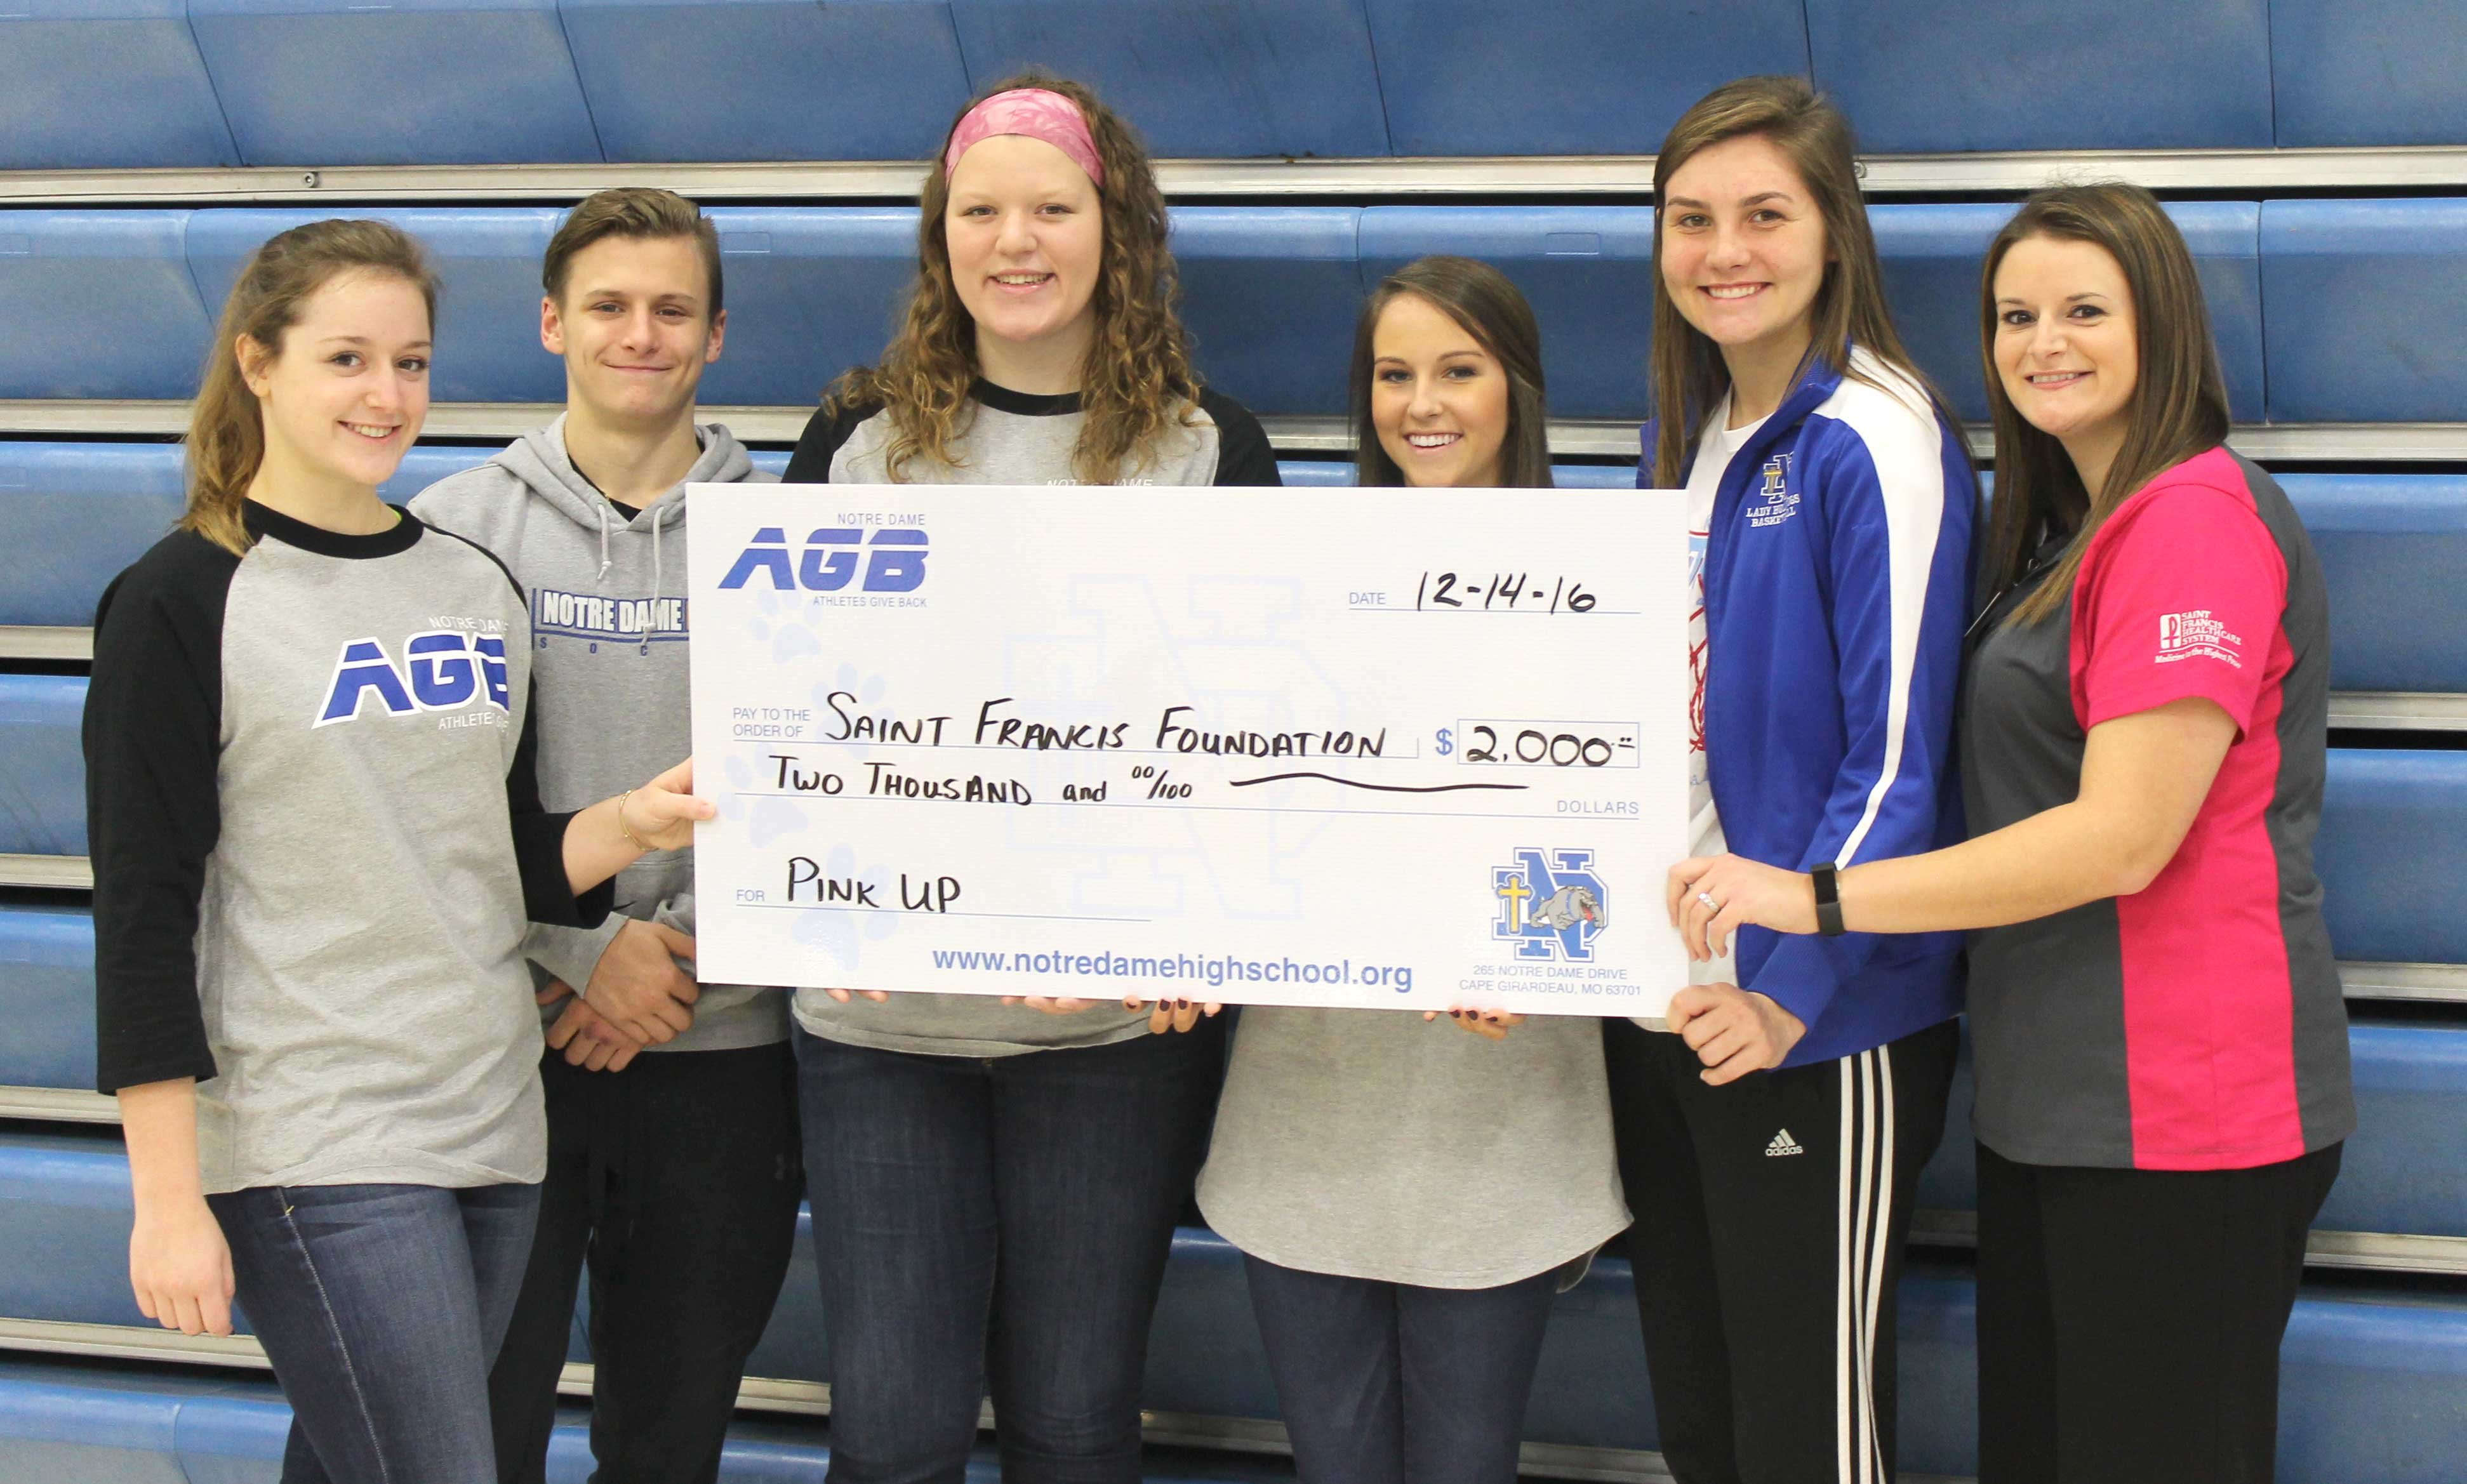 "ATHLETES GIVE BACK—Notre Dame Regional High School, Athletes Give Back (AGB) organization presented a check for $2,000 to the Saint Francis Medical Center Foundation, ""Pink Up"" campaign. Student athletes, Taylor Allen, Ben Womack, Anna Kate Klueppel, Lindsay Parker, and Allie Ziegler, presented the check to Laura Boos Probst, Notre Dame Class of '09, of the Saint Francis Foundation. (??)"